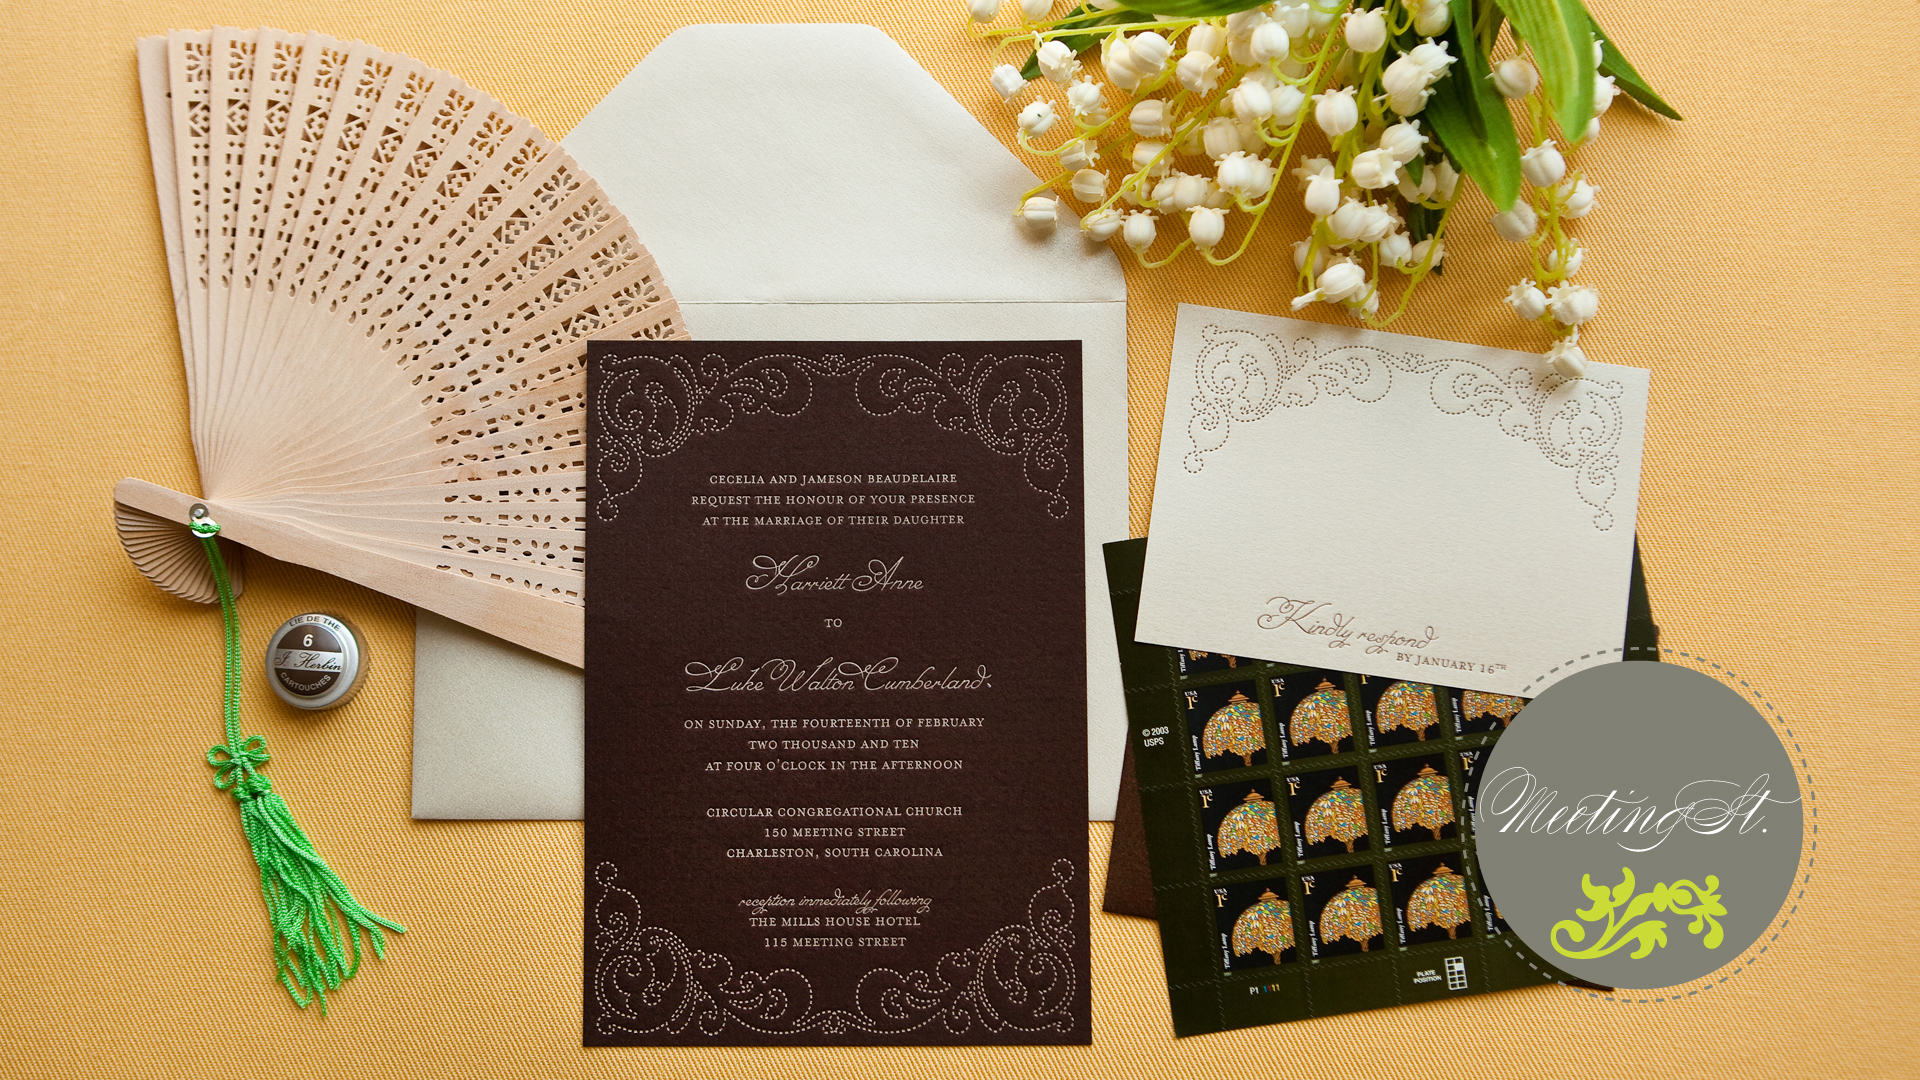 40 Unique Wedding Invitation Designs - DzineBlog.com